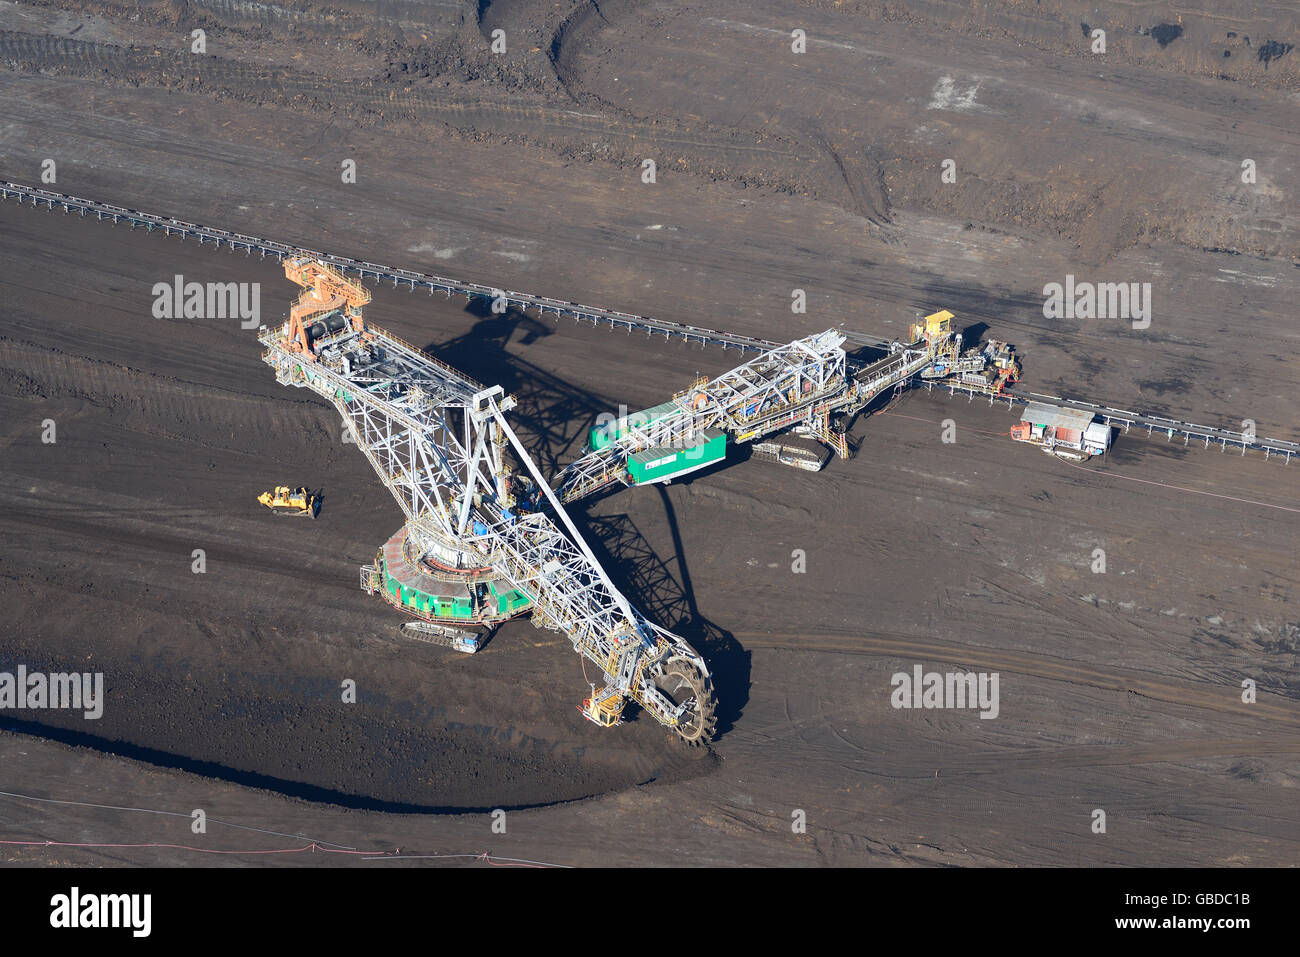 BUCKET-WHEEL EXCAVATOR IN AN OPEN-PIT COAL MINE (aerial view). Near Belchatow in Poland. - Stock Image